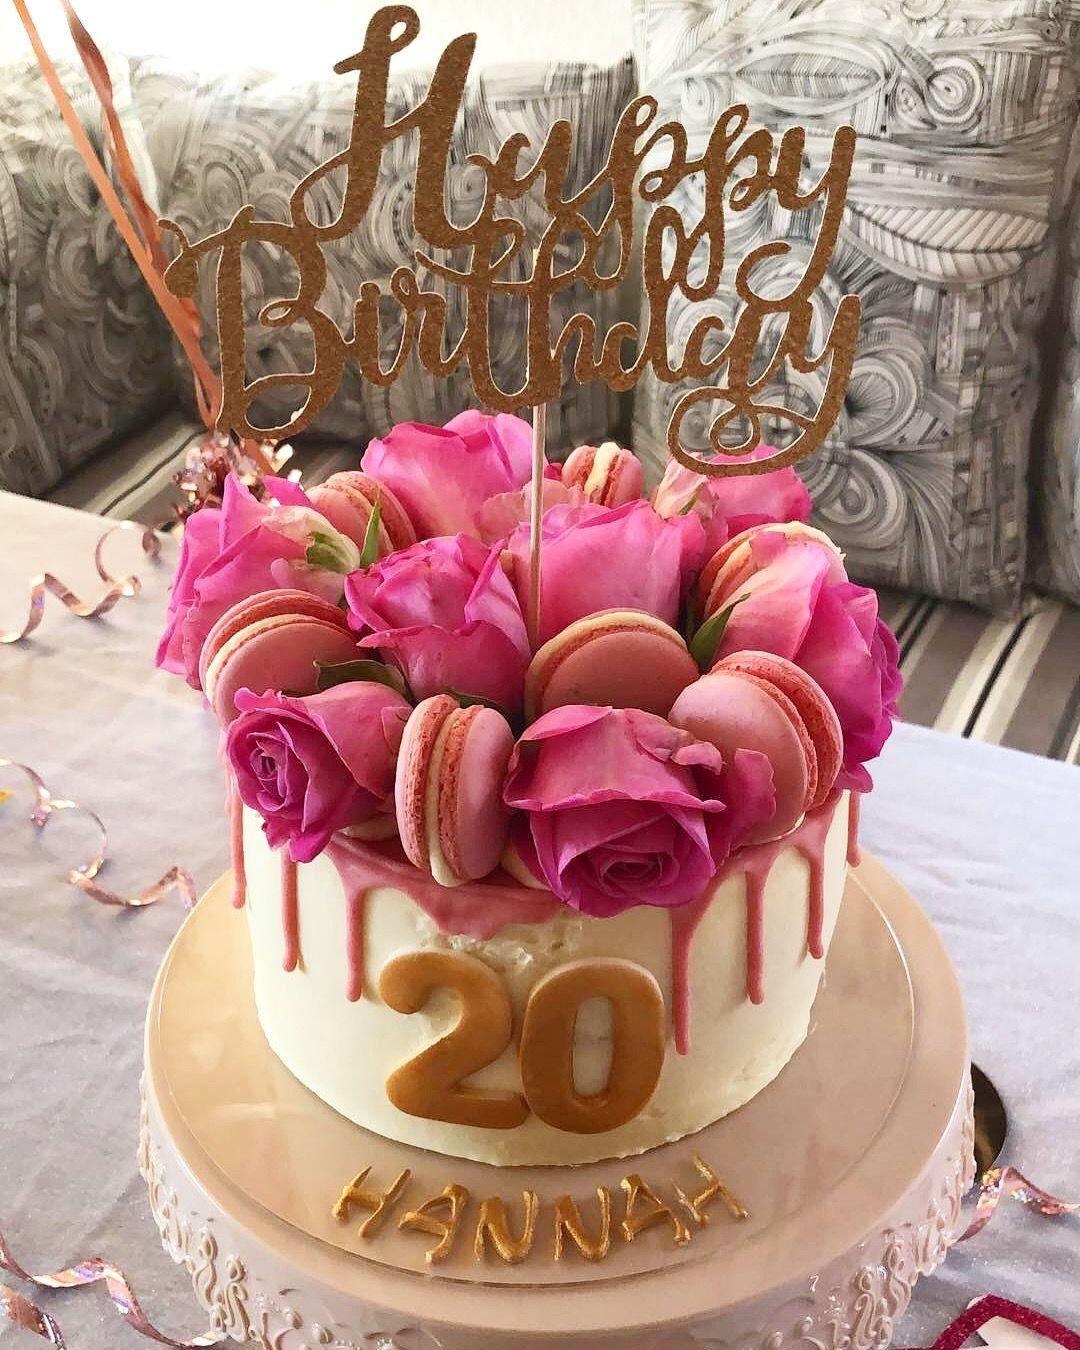 Sensational Birthday Cake With Images 20 Birthday Cake 25Th Birthday Funny Birthday Cards Online Inifodamsfinfo